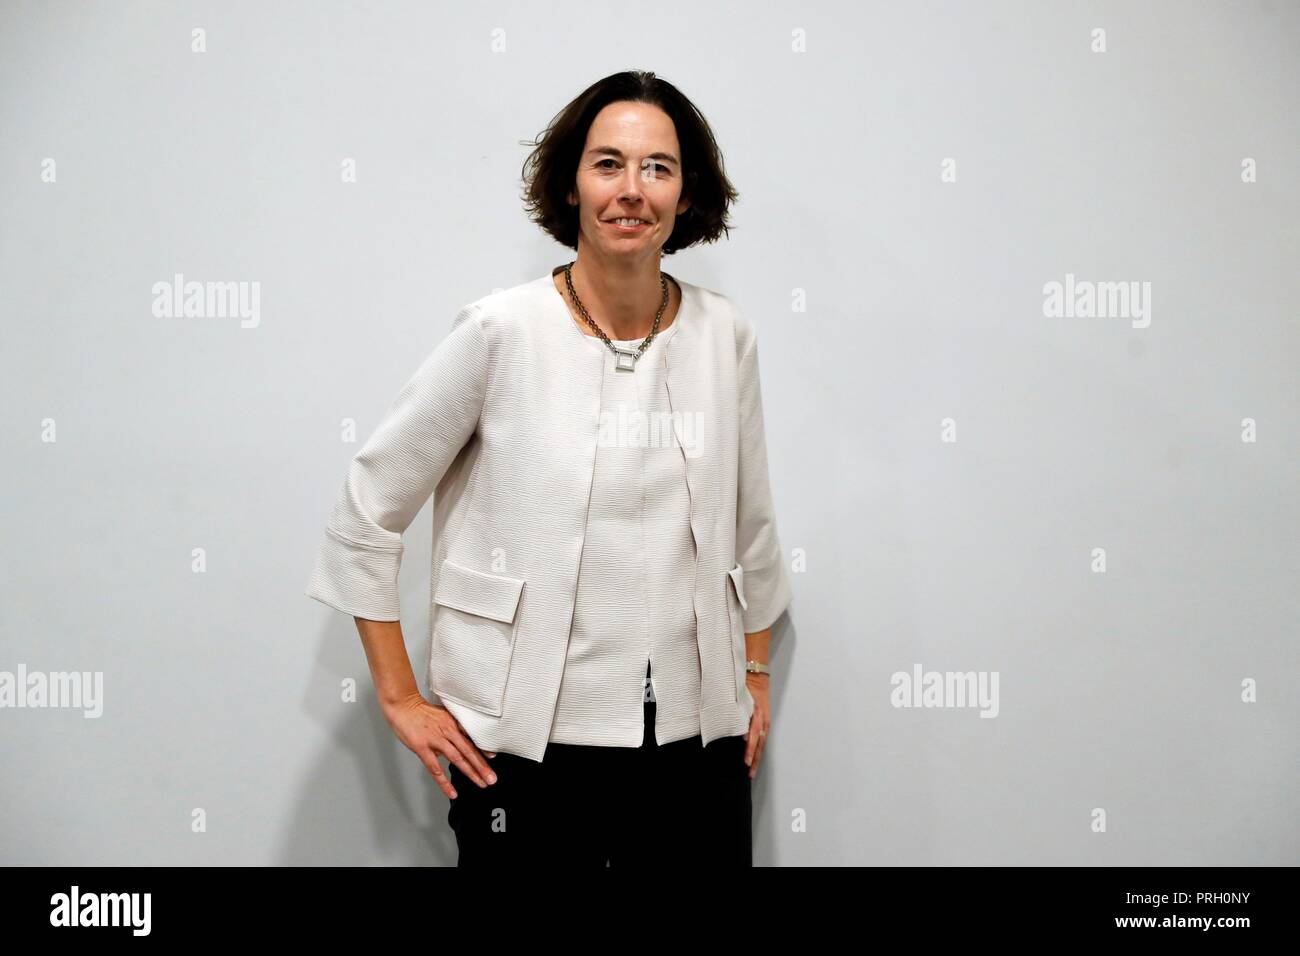 Current Year Stock Photos Images Alamy Blouse Rahmat Flower Madrid Spain 03rd Oct 2018 Mission Chief For At International Monetary